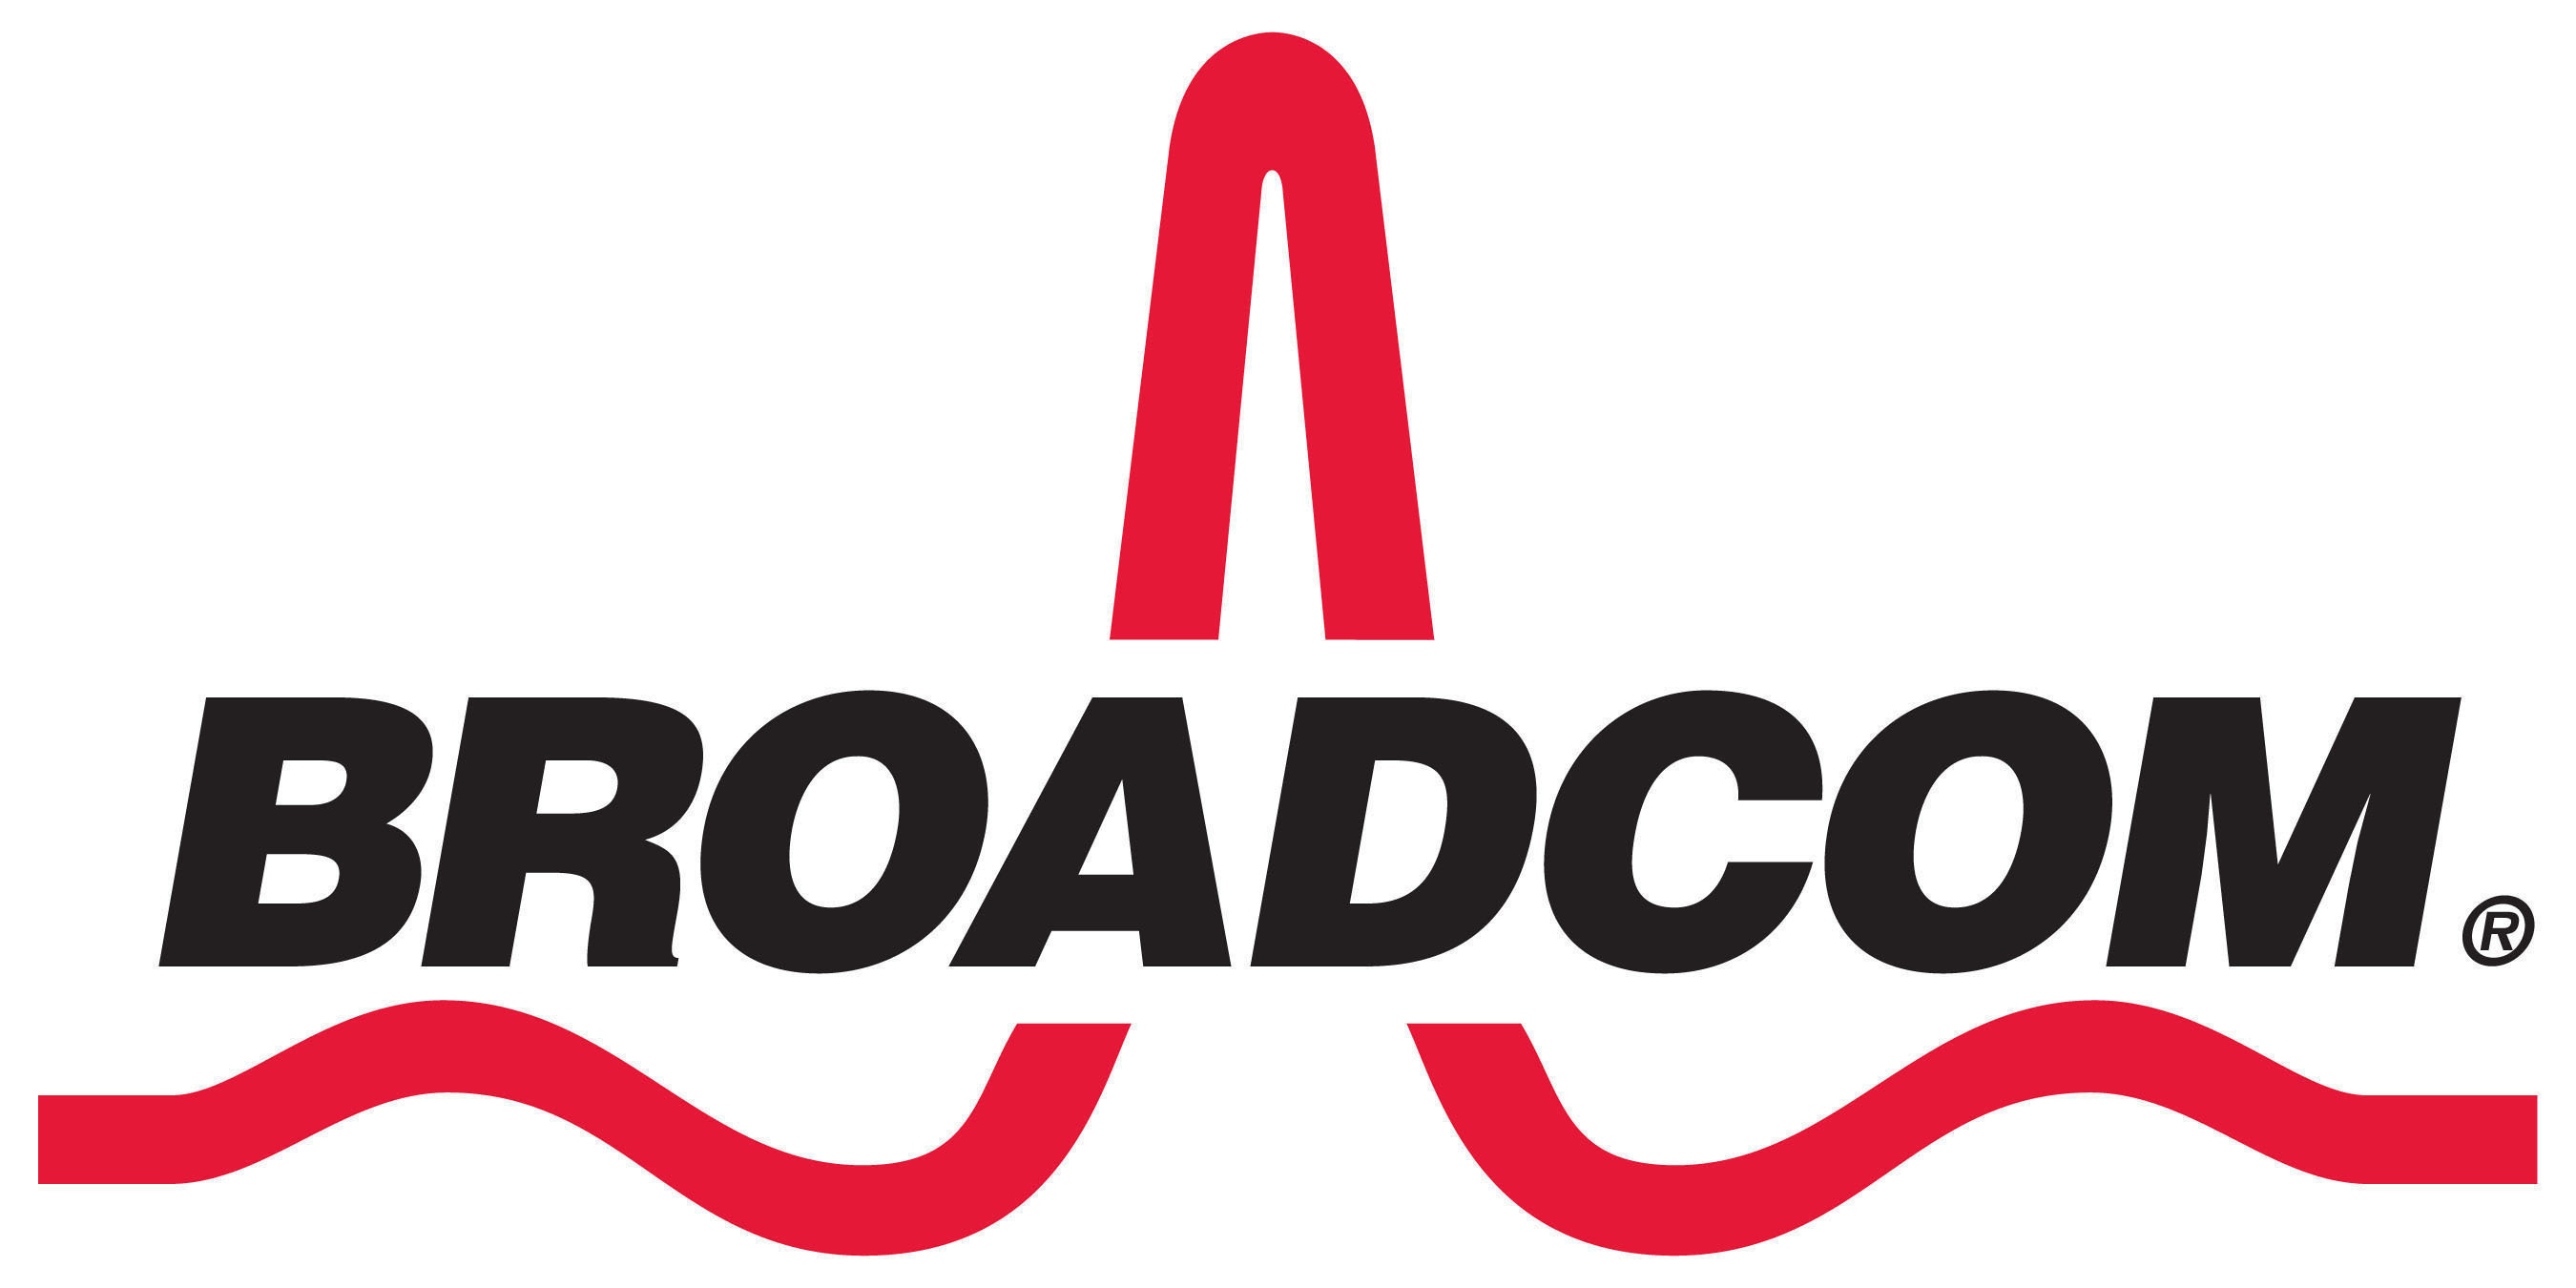 Broadcom Corporation (NASDAQ: BRCM) Announces the Commencement of Tender Offers and Consent